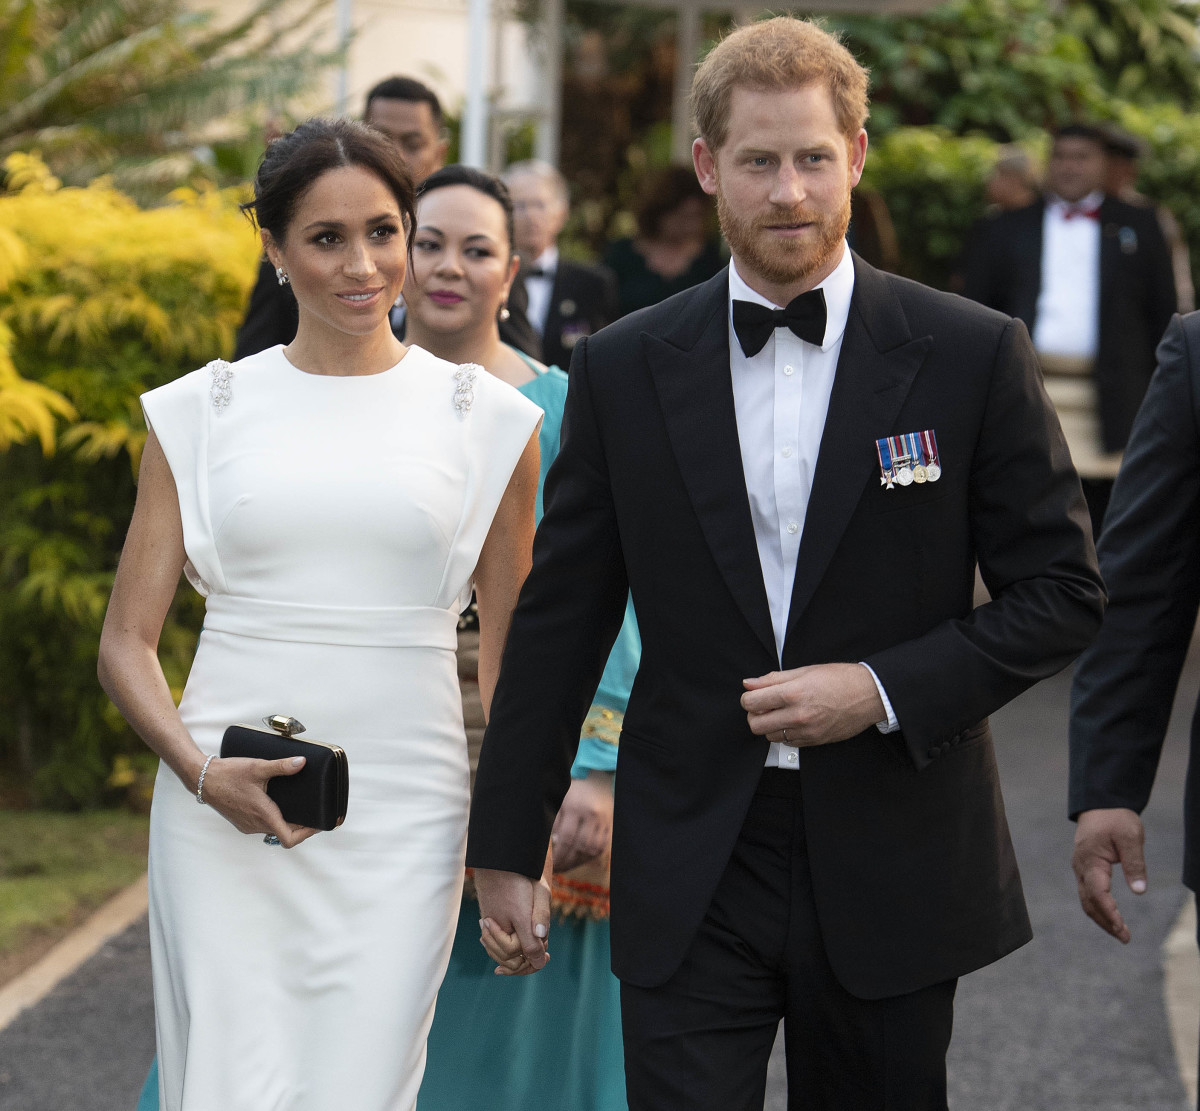 Meghan, Duchess of Sussex, and Prince Harry, Duke of Sussex, attend a state dinner at the Royal Residence in Nuku'alofa, Tonga. Photo: Paul Edwards - Pool/Getty Images